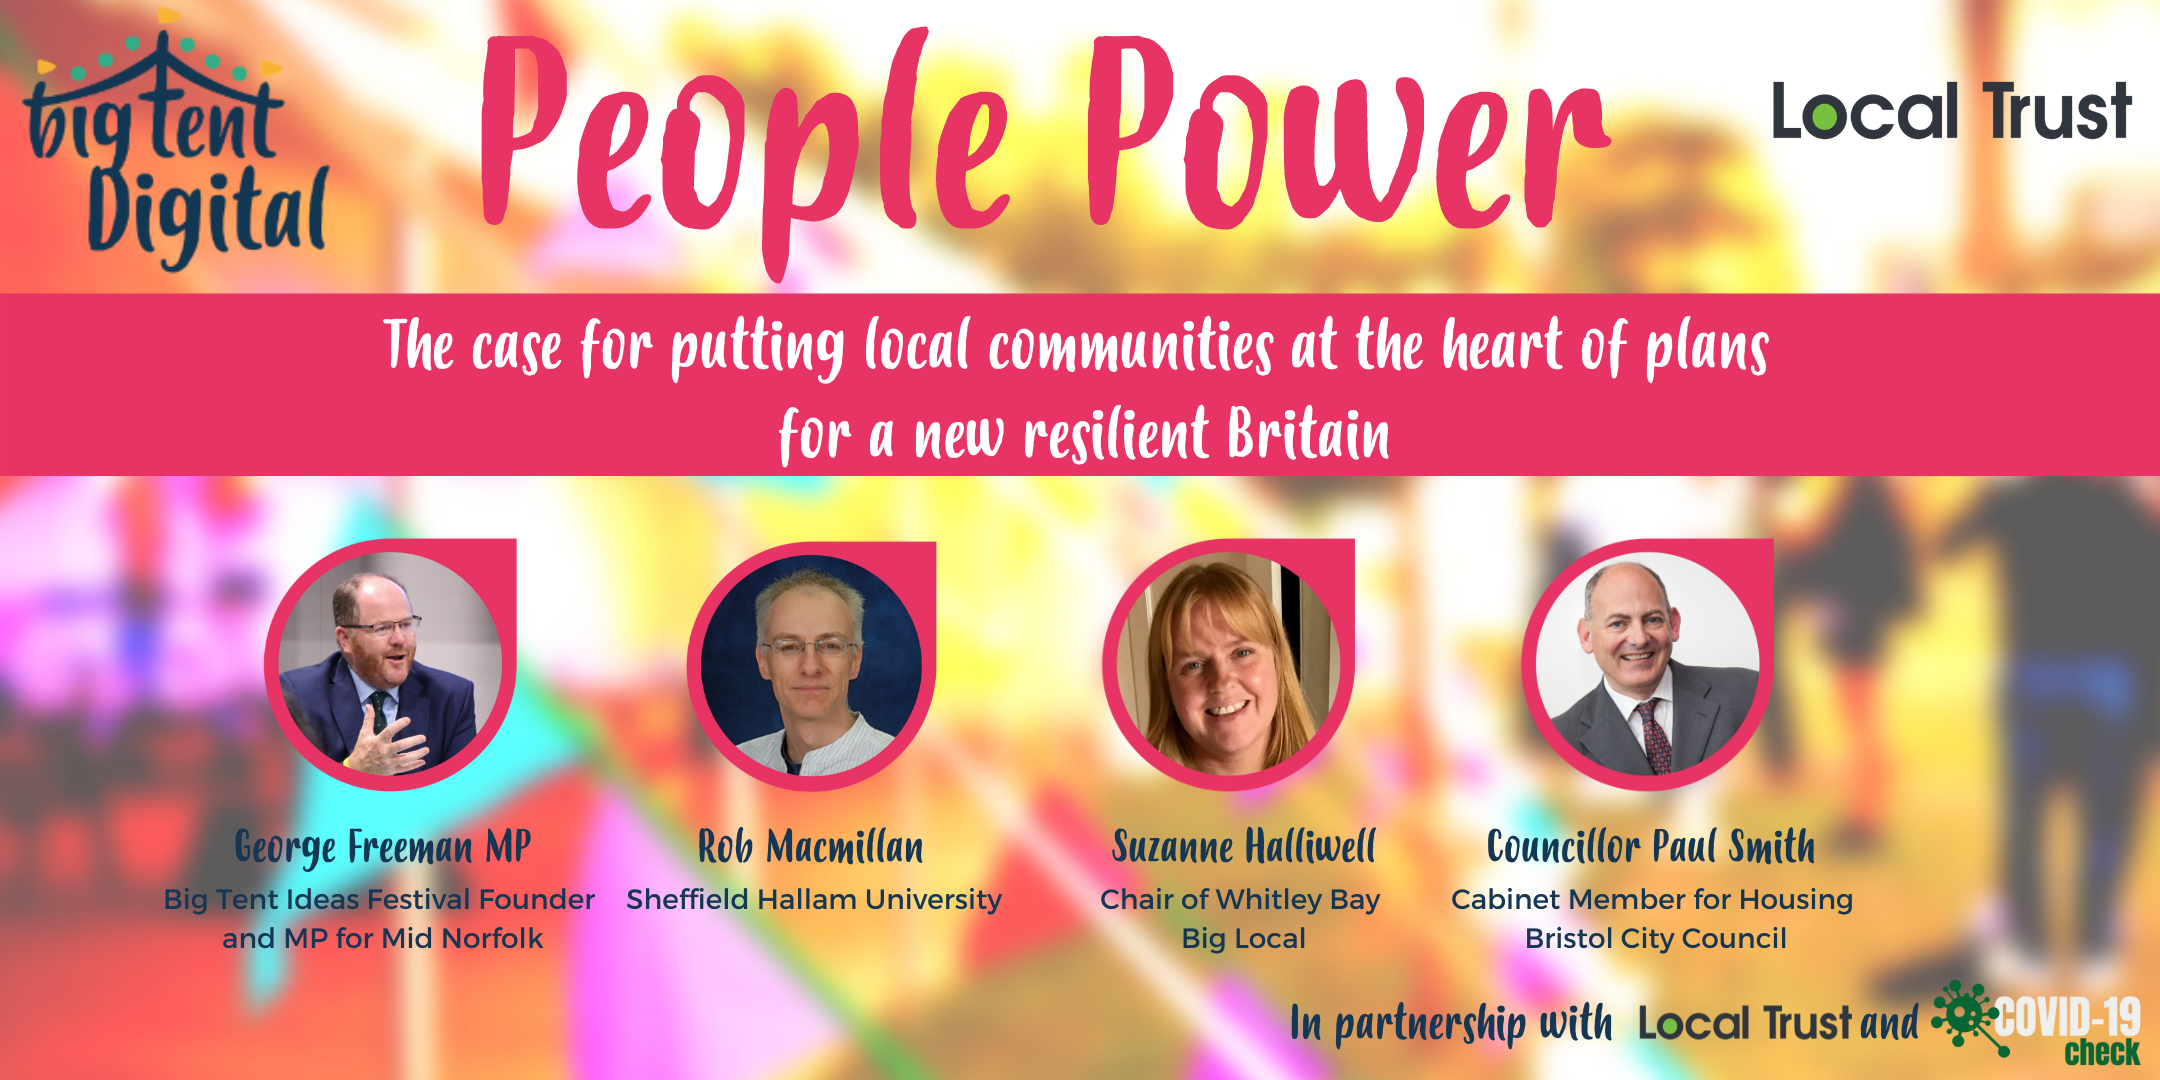 People power: More community involvement needed in social services says Local Trust